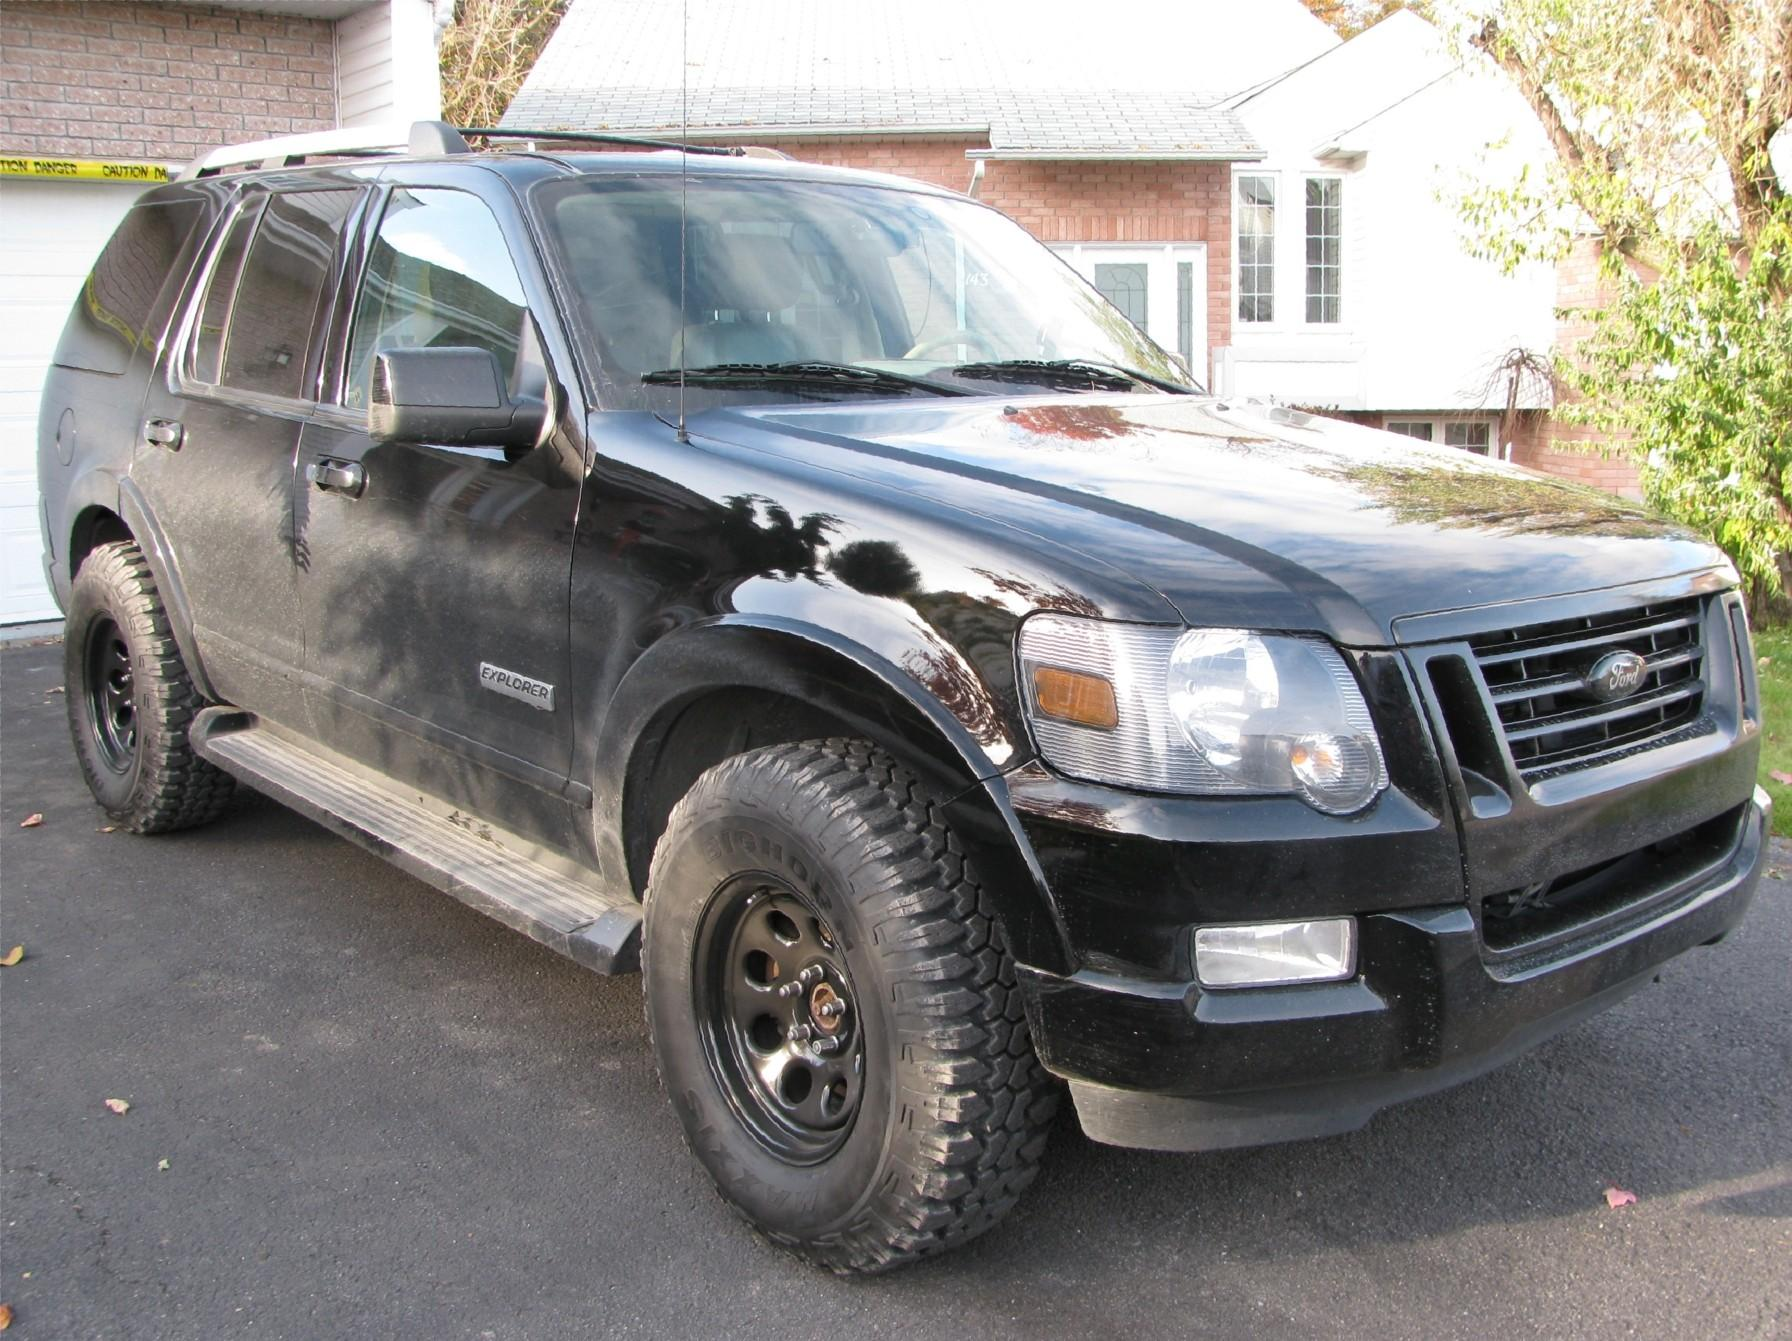 BeachbuckY's 2006 Ford Explorer